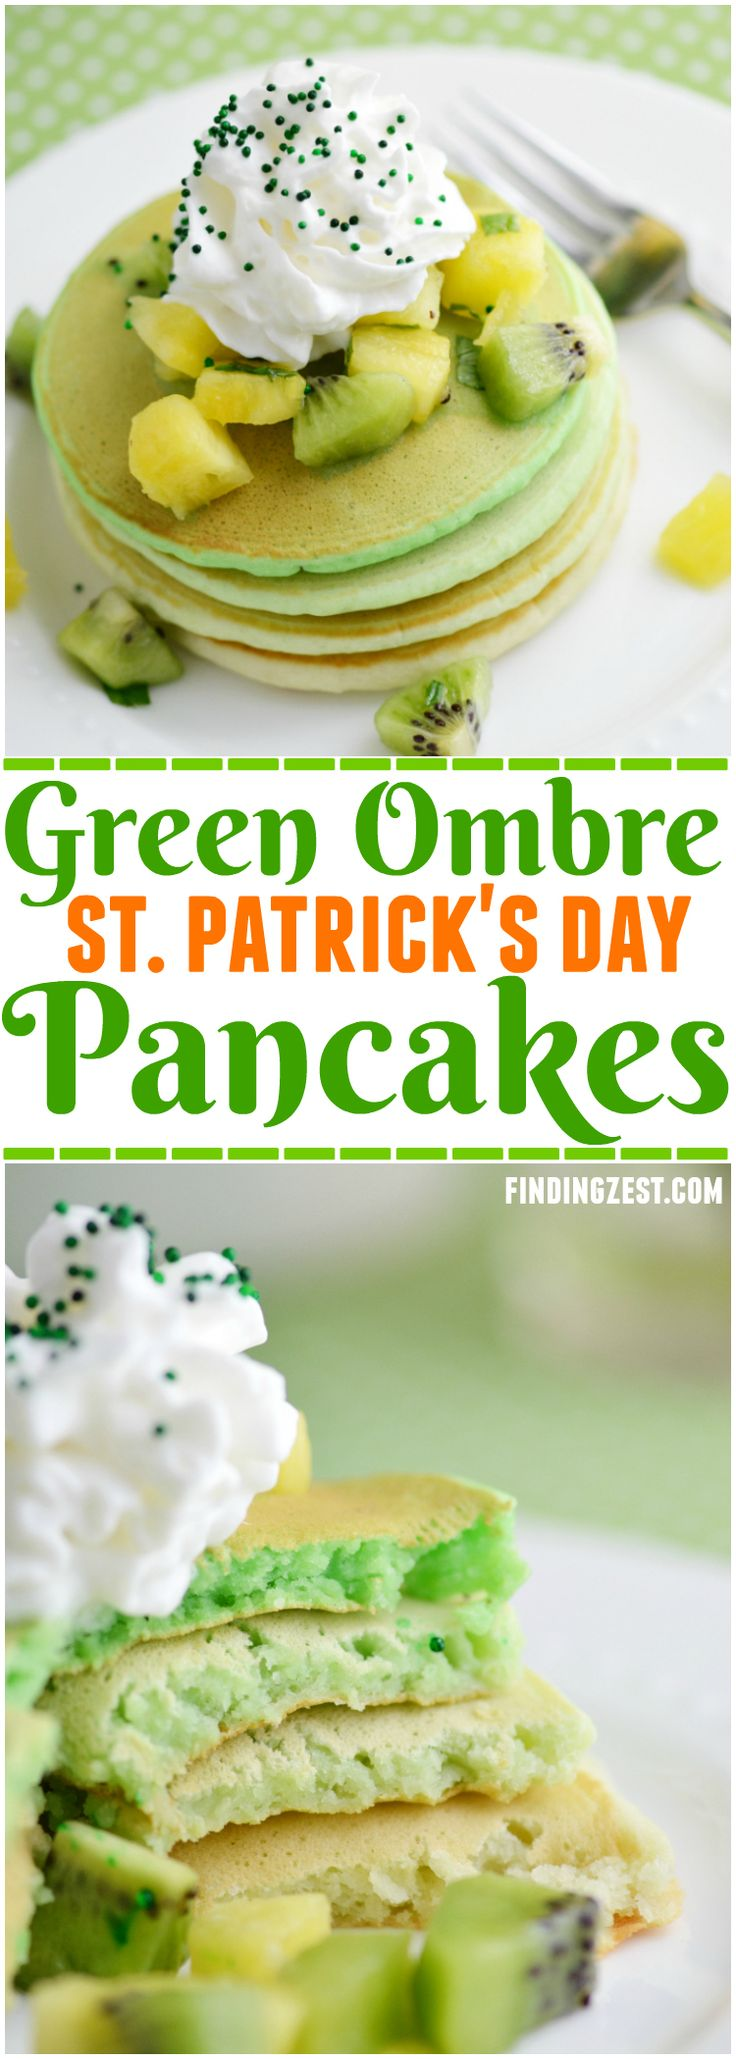 Serve these Green Ombre St. Patrick's Day Pancakes for a delicious breakfast or brunch! Topped with fresh kiwi and pineapple fruit salsa, it is sure to delight. #stpatricksday #stpaddysday #pancakes #ombre #fruit #breakfast #kidfriendly